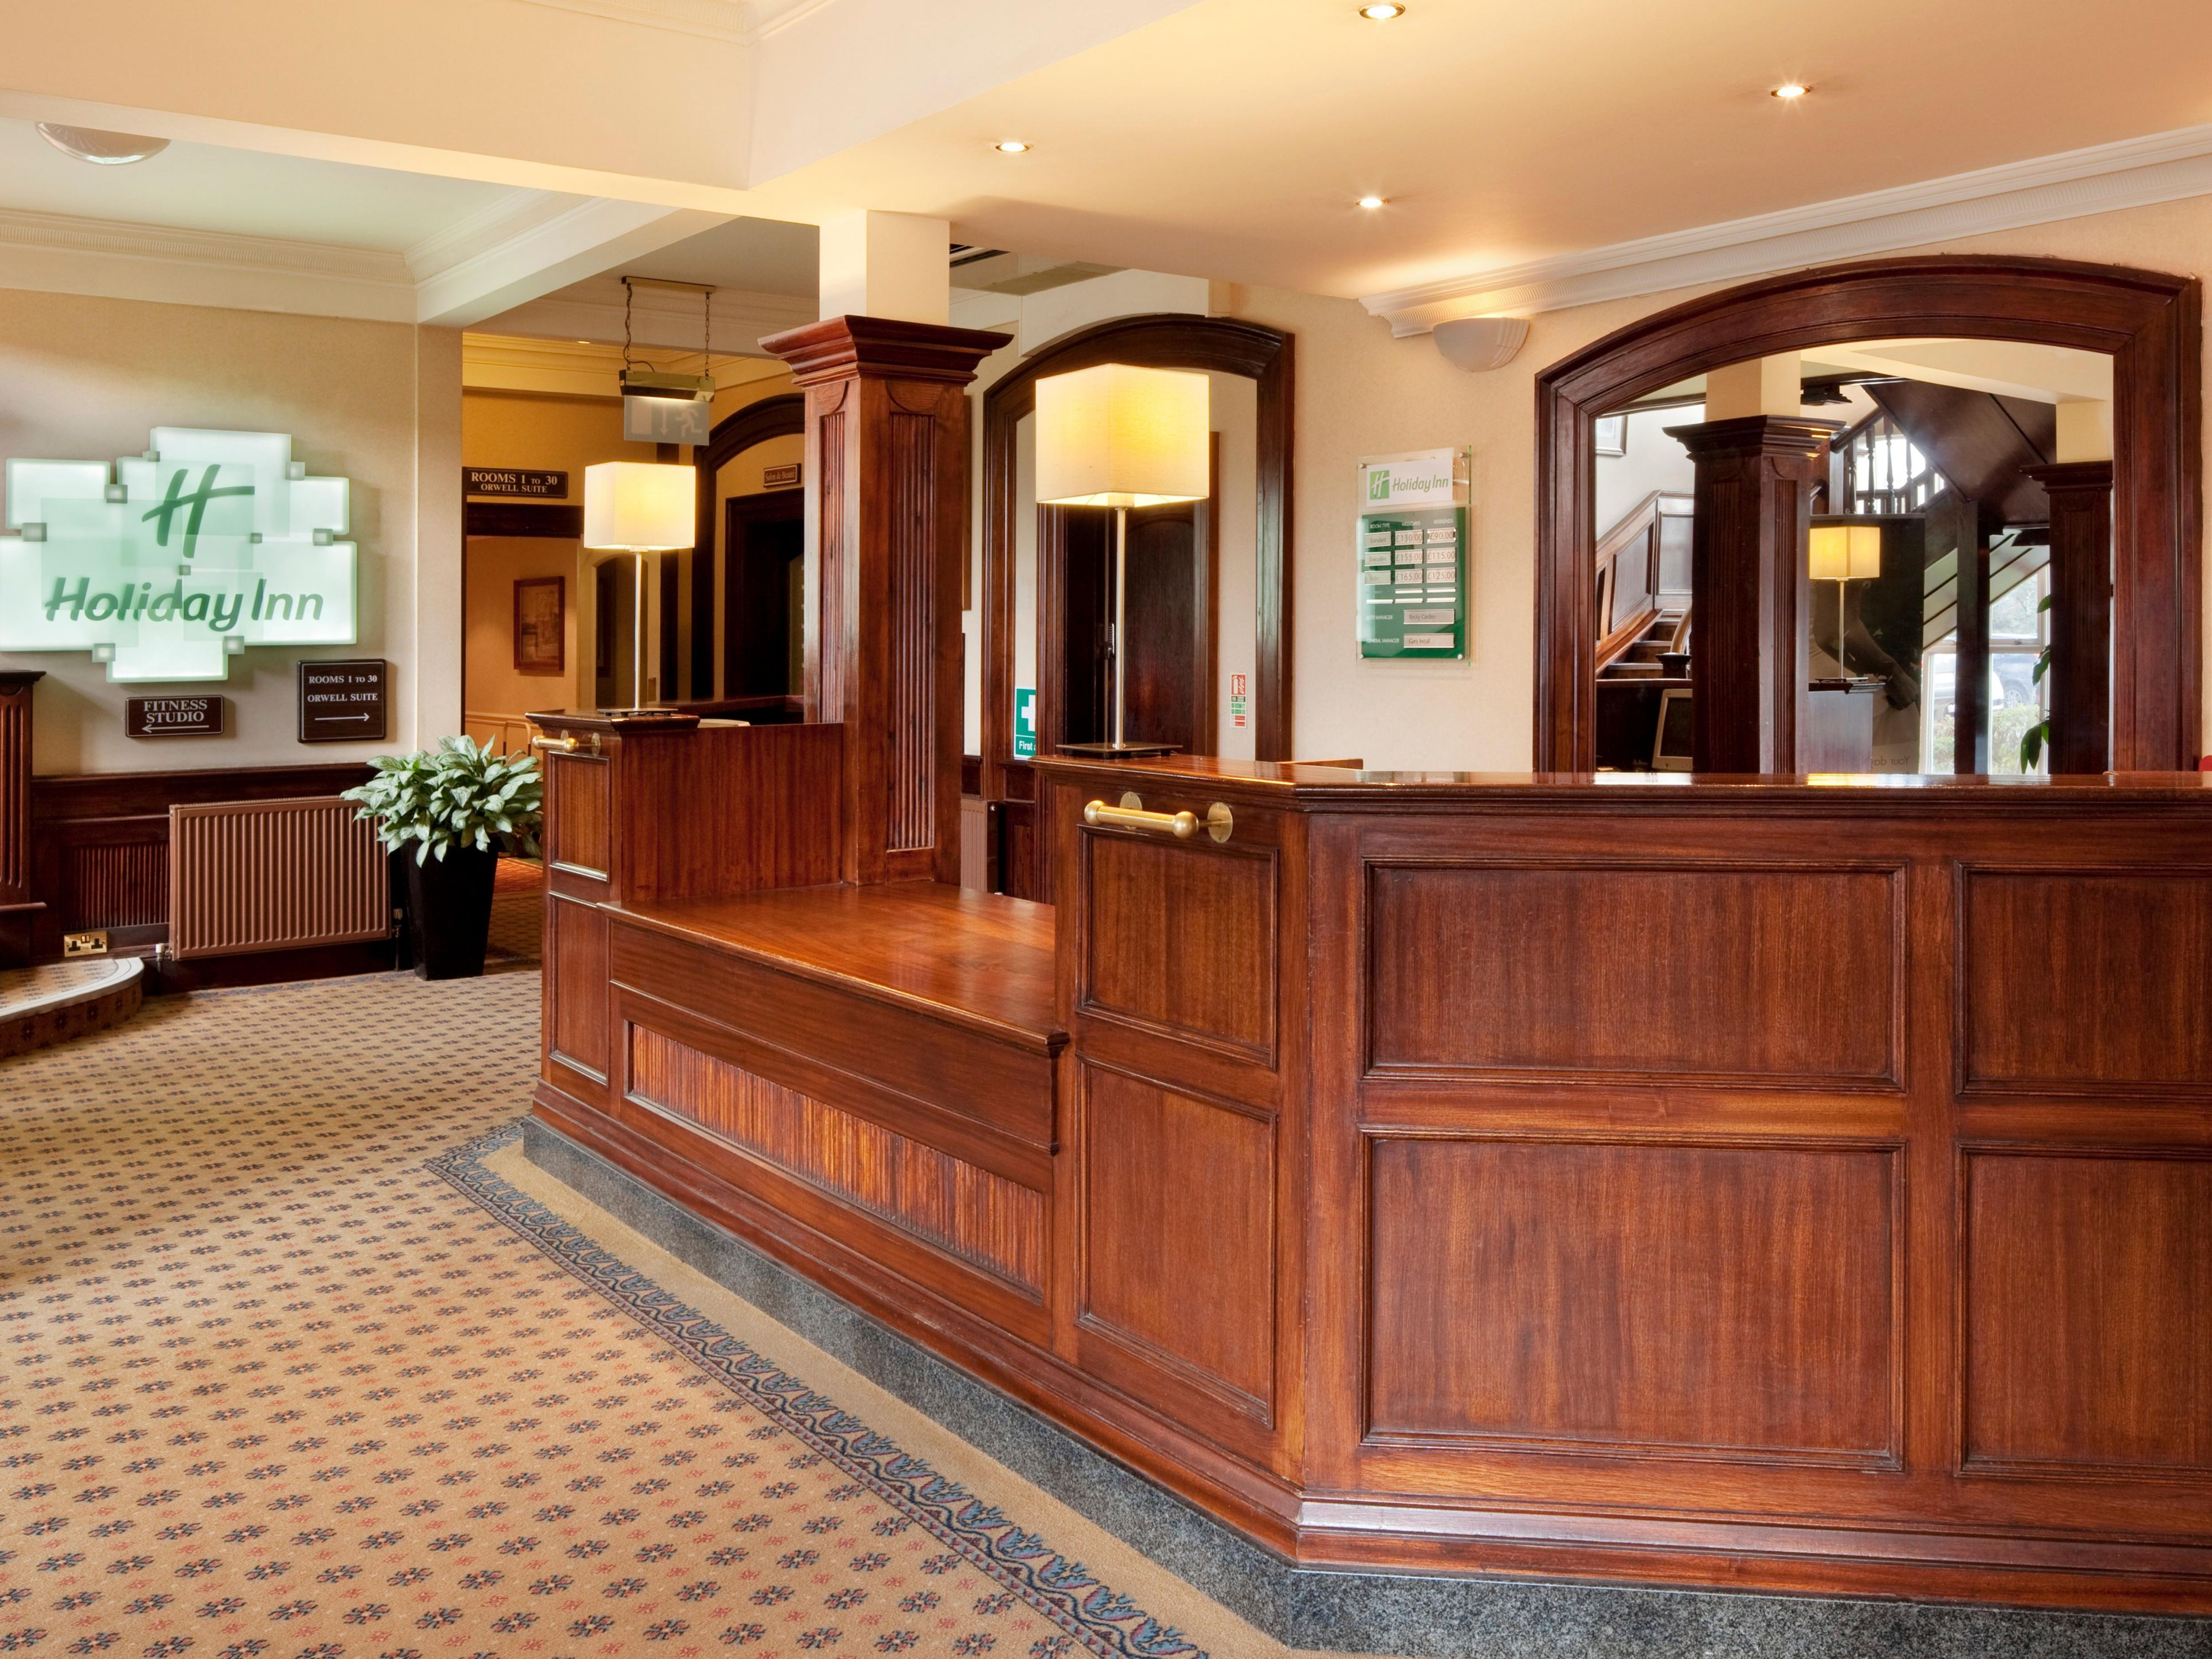 A warm welcome awaits you at reception